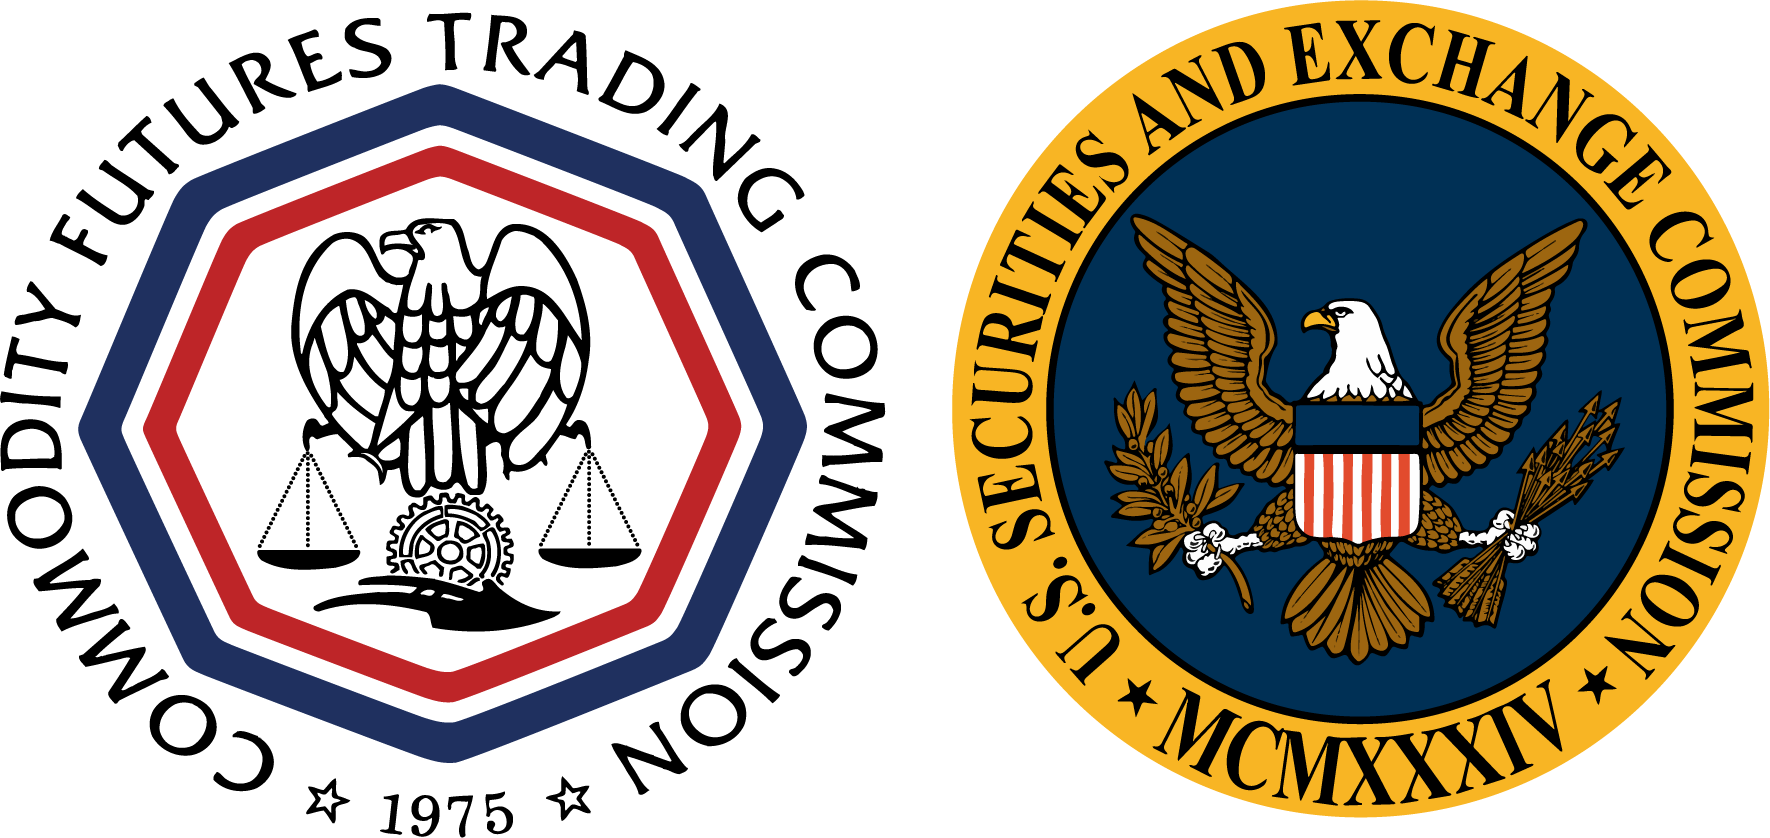 CFTC and SEC Seal